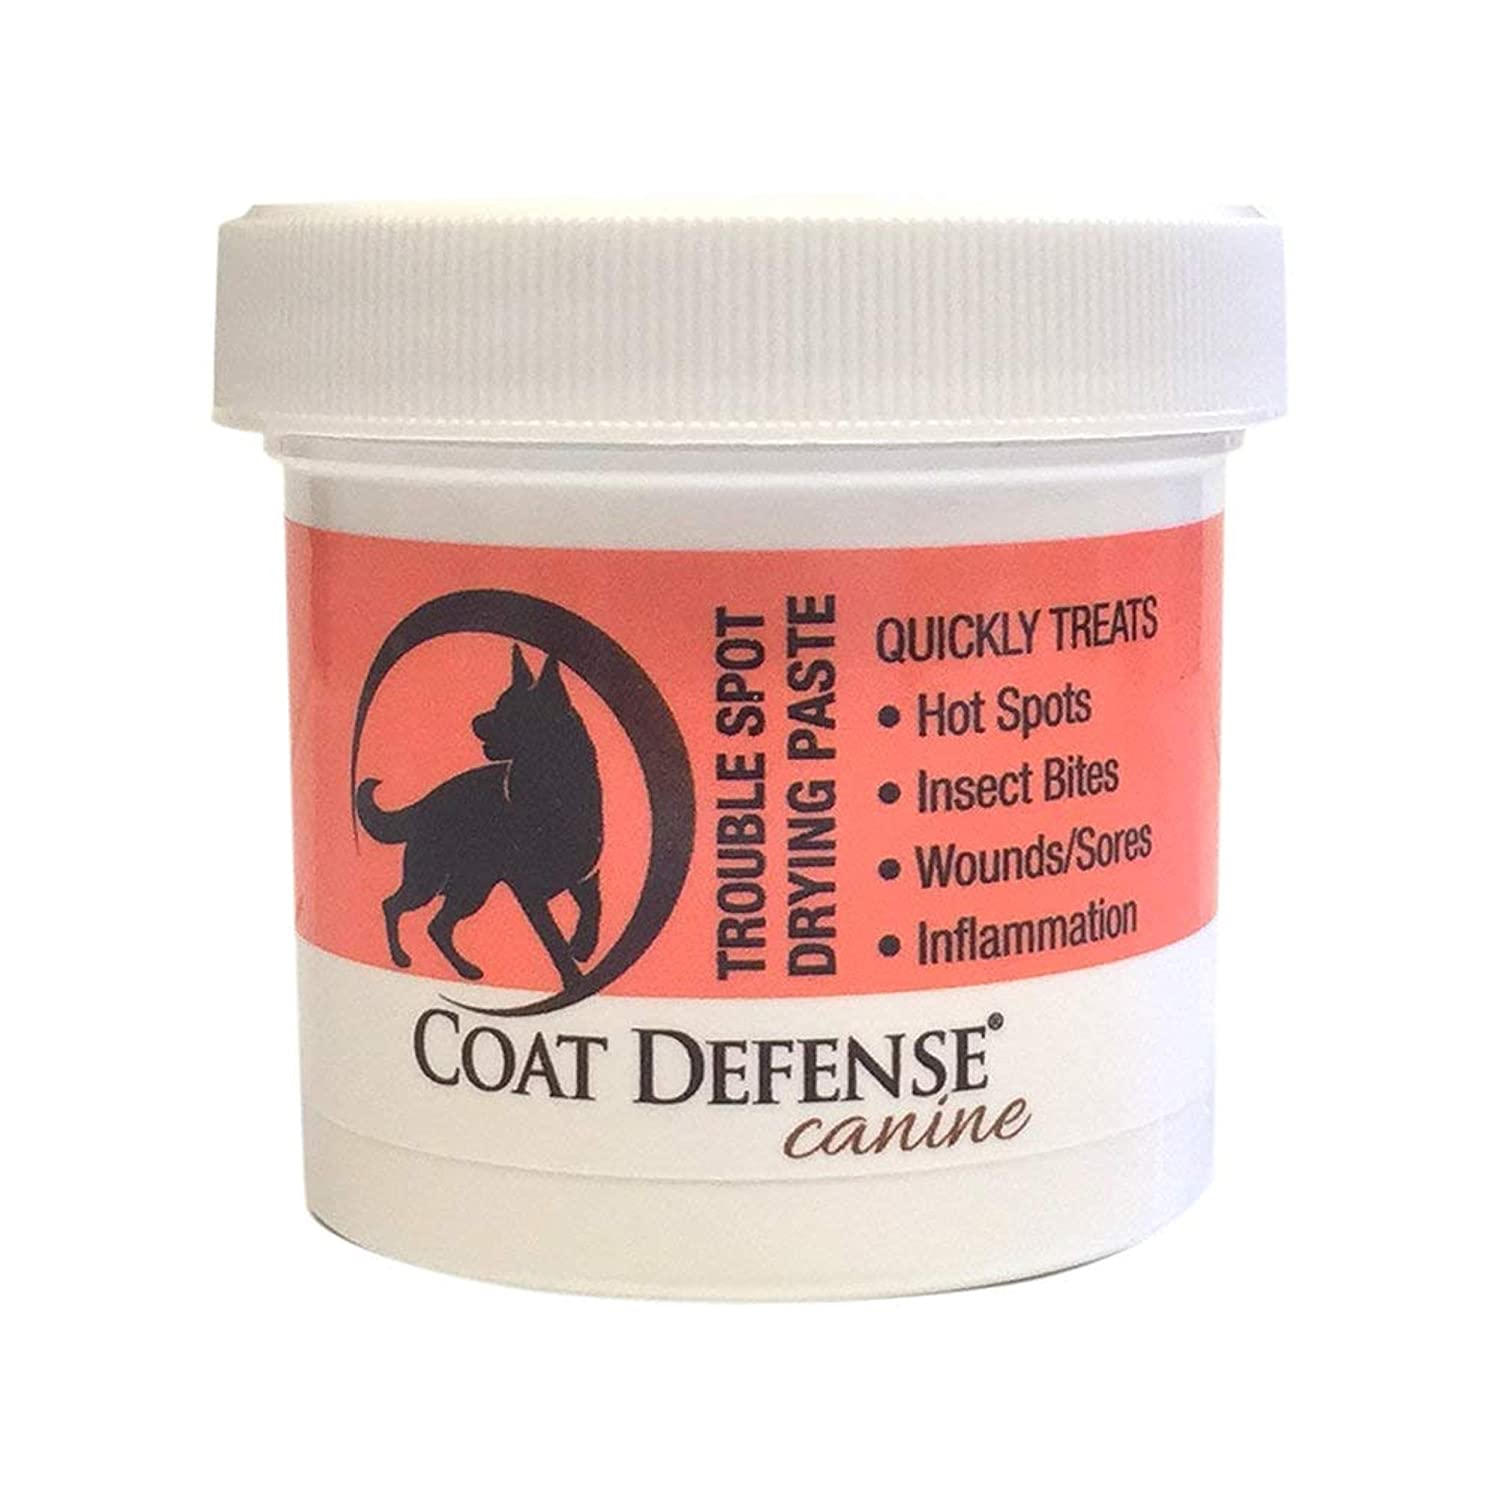 Coat Defense Trouble Spot Drying Paste For Dogs | Naturally Anti Fungal Anti Bacterial Treats Hot Spots, Itchy Skin, Skin Allergies, Dermatitis Inflammation, Insect Bites, Wounds, Sores | Made In USA